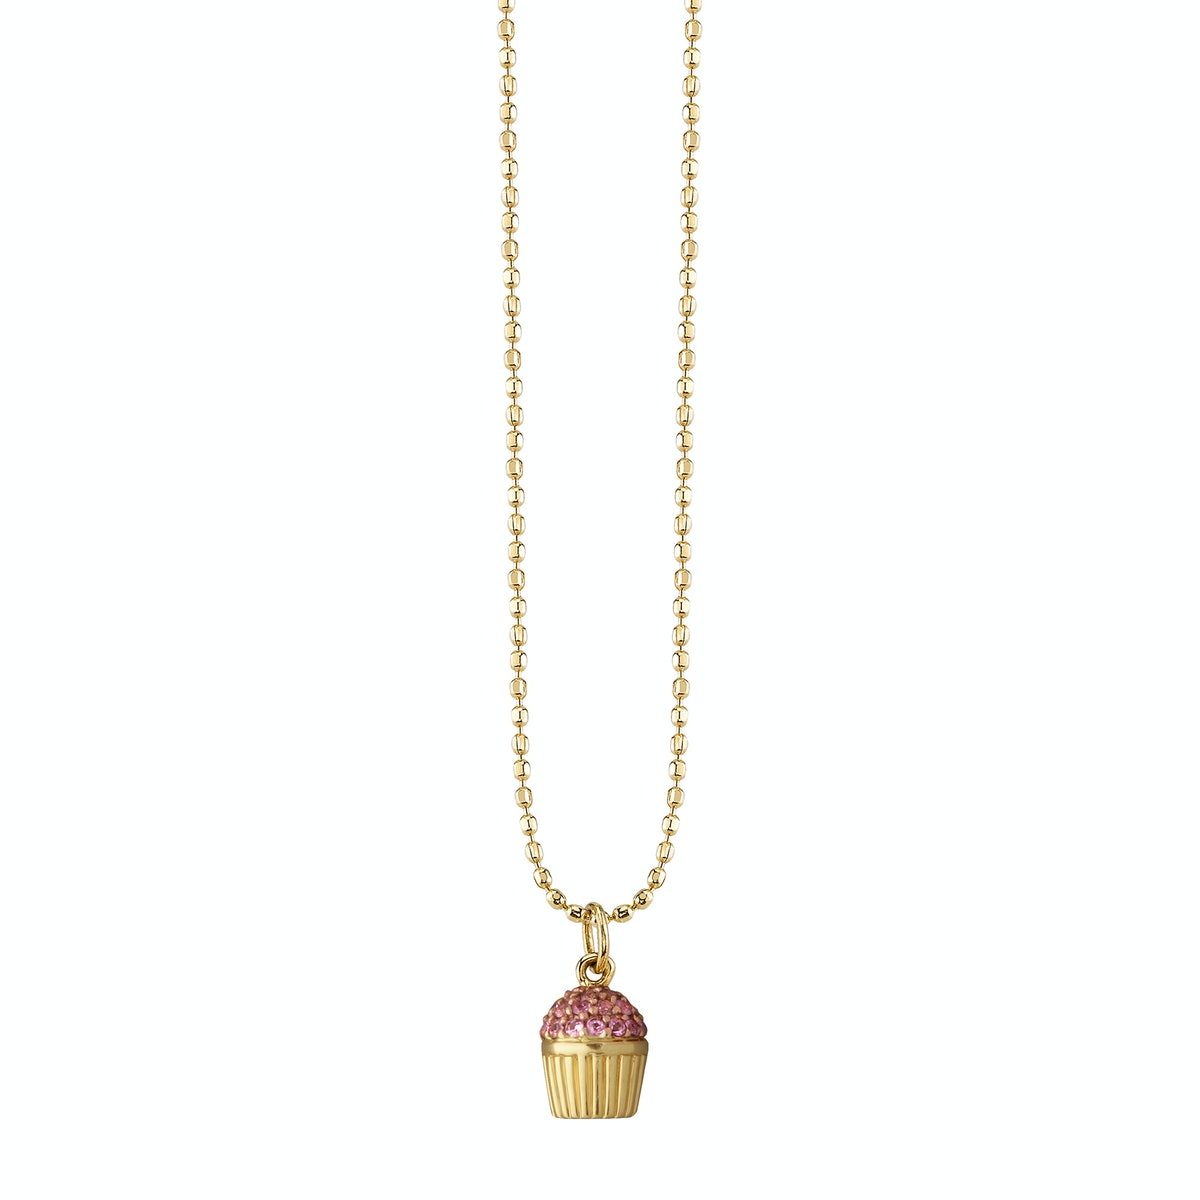 Sydney Evan 14k rose and yellow gold pavé pink sapphire cupcake necklac